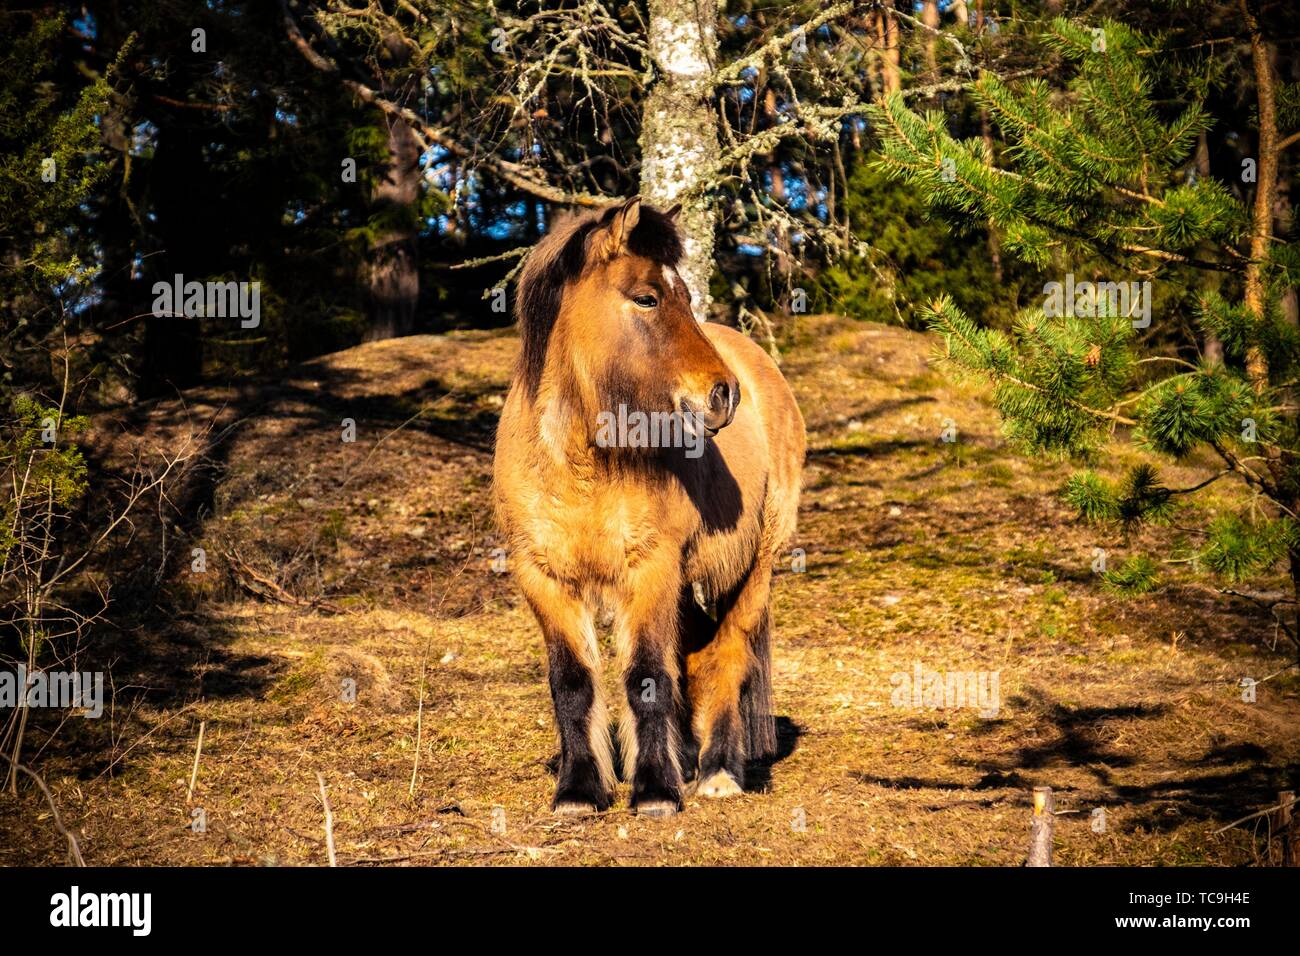 Horse in the forest in Sweden. - Stock Image